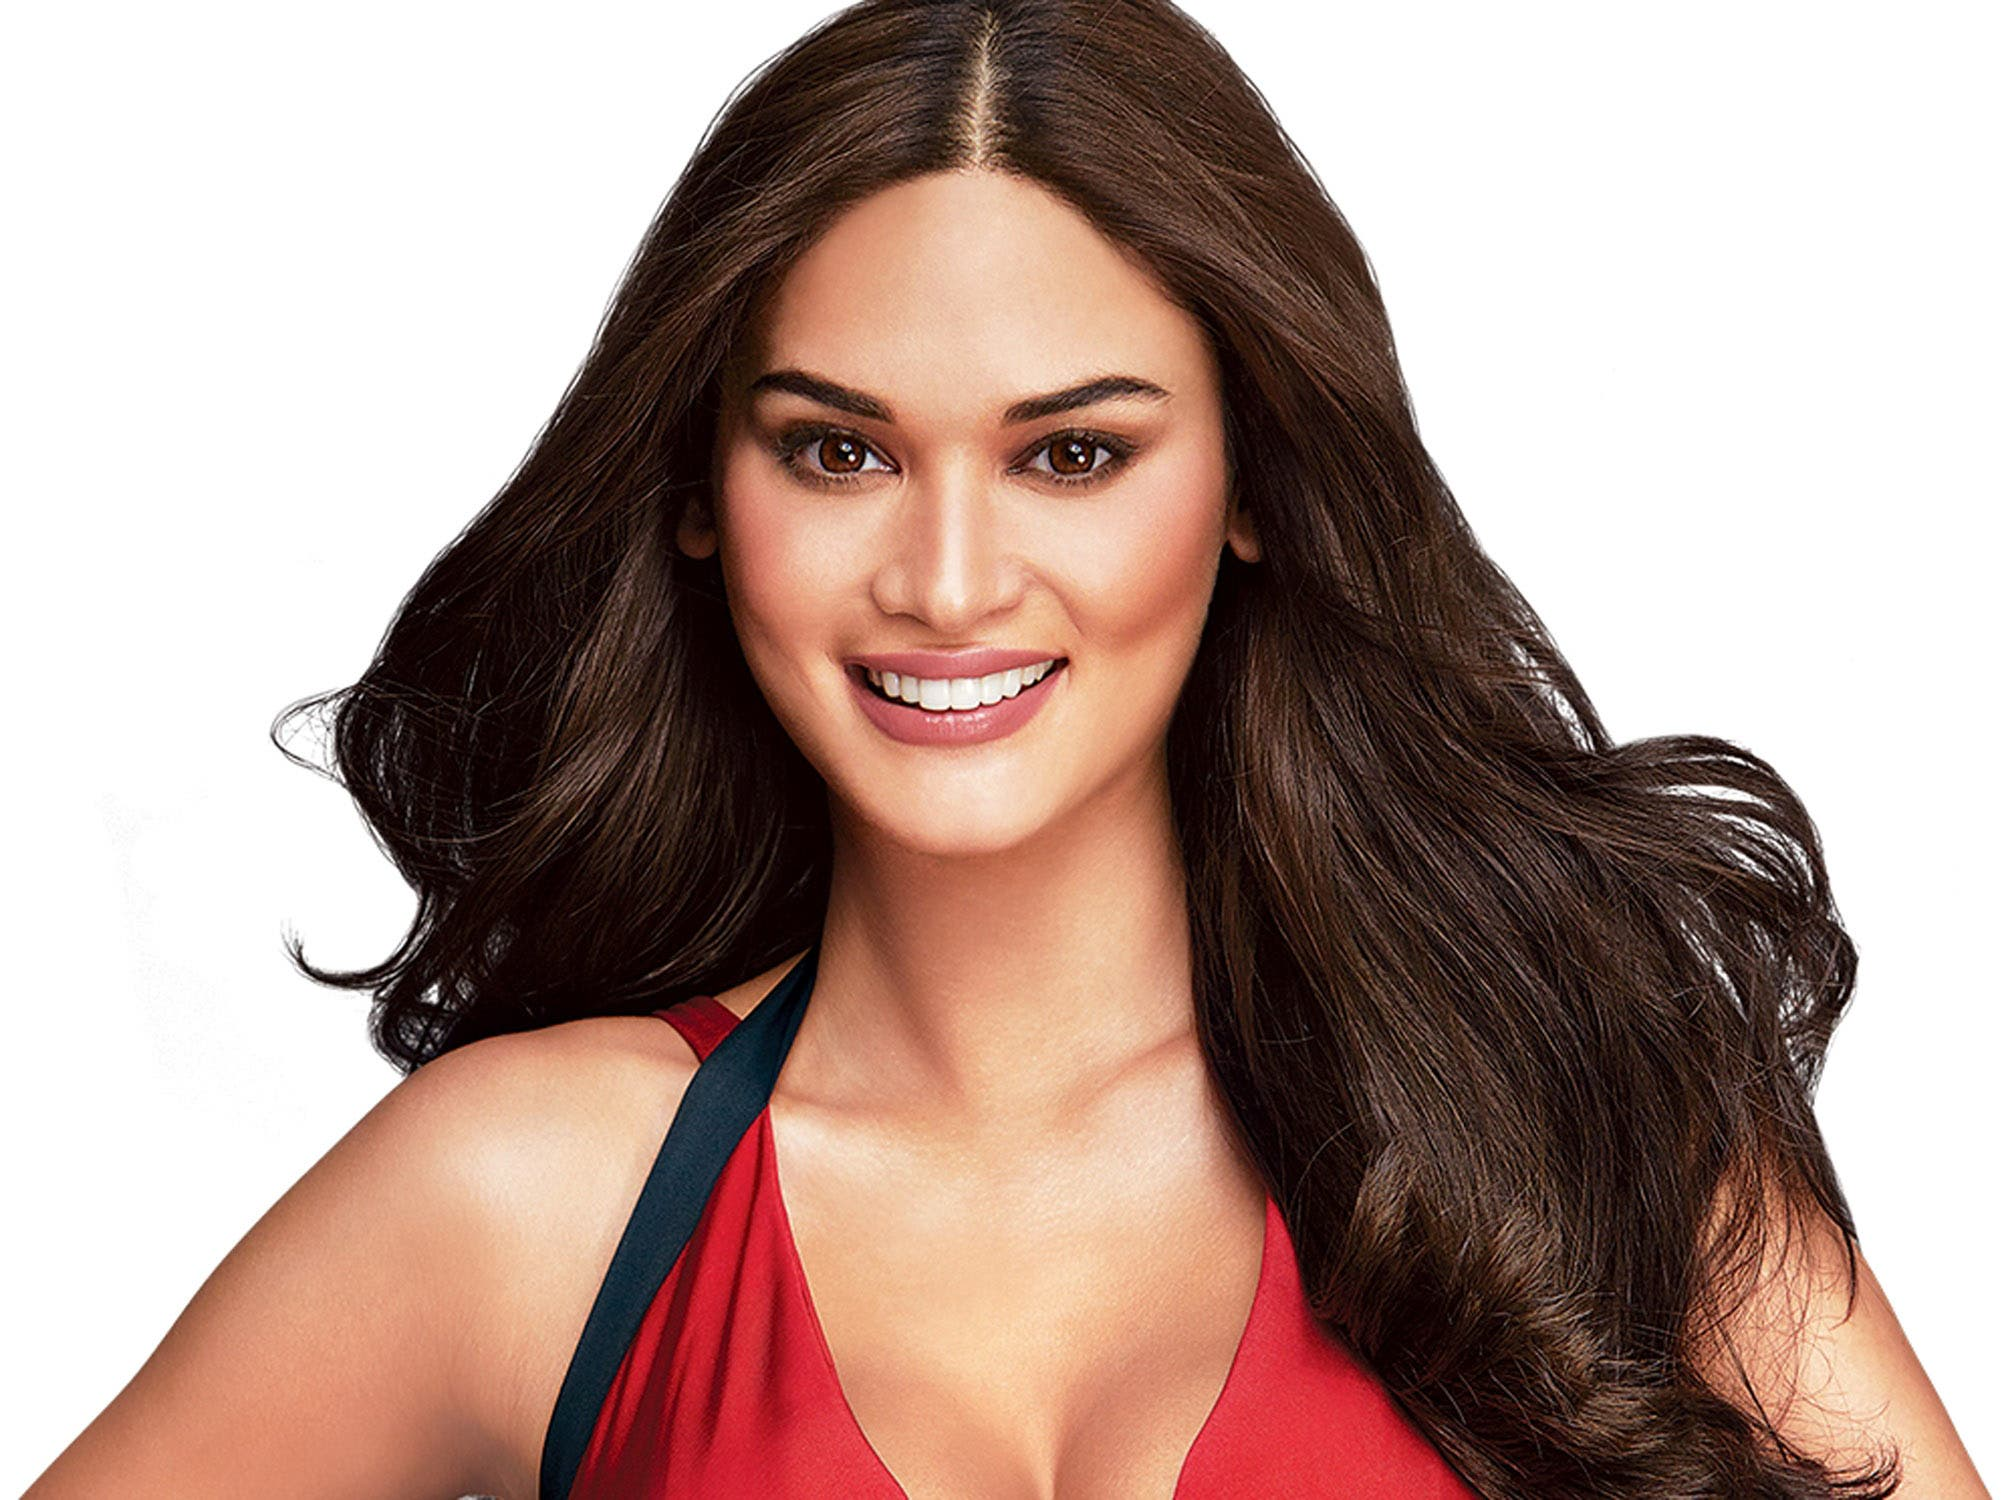 Pia Wurtzbach nudes (93 fotos), hot Topless, YouTube, braless 2015